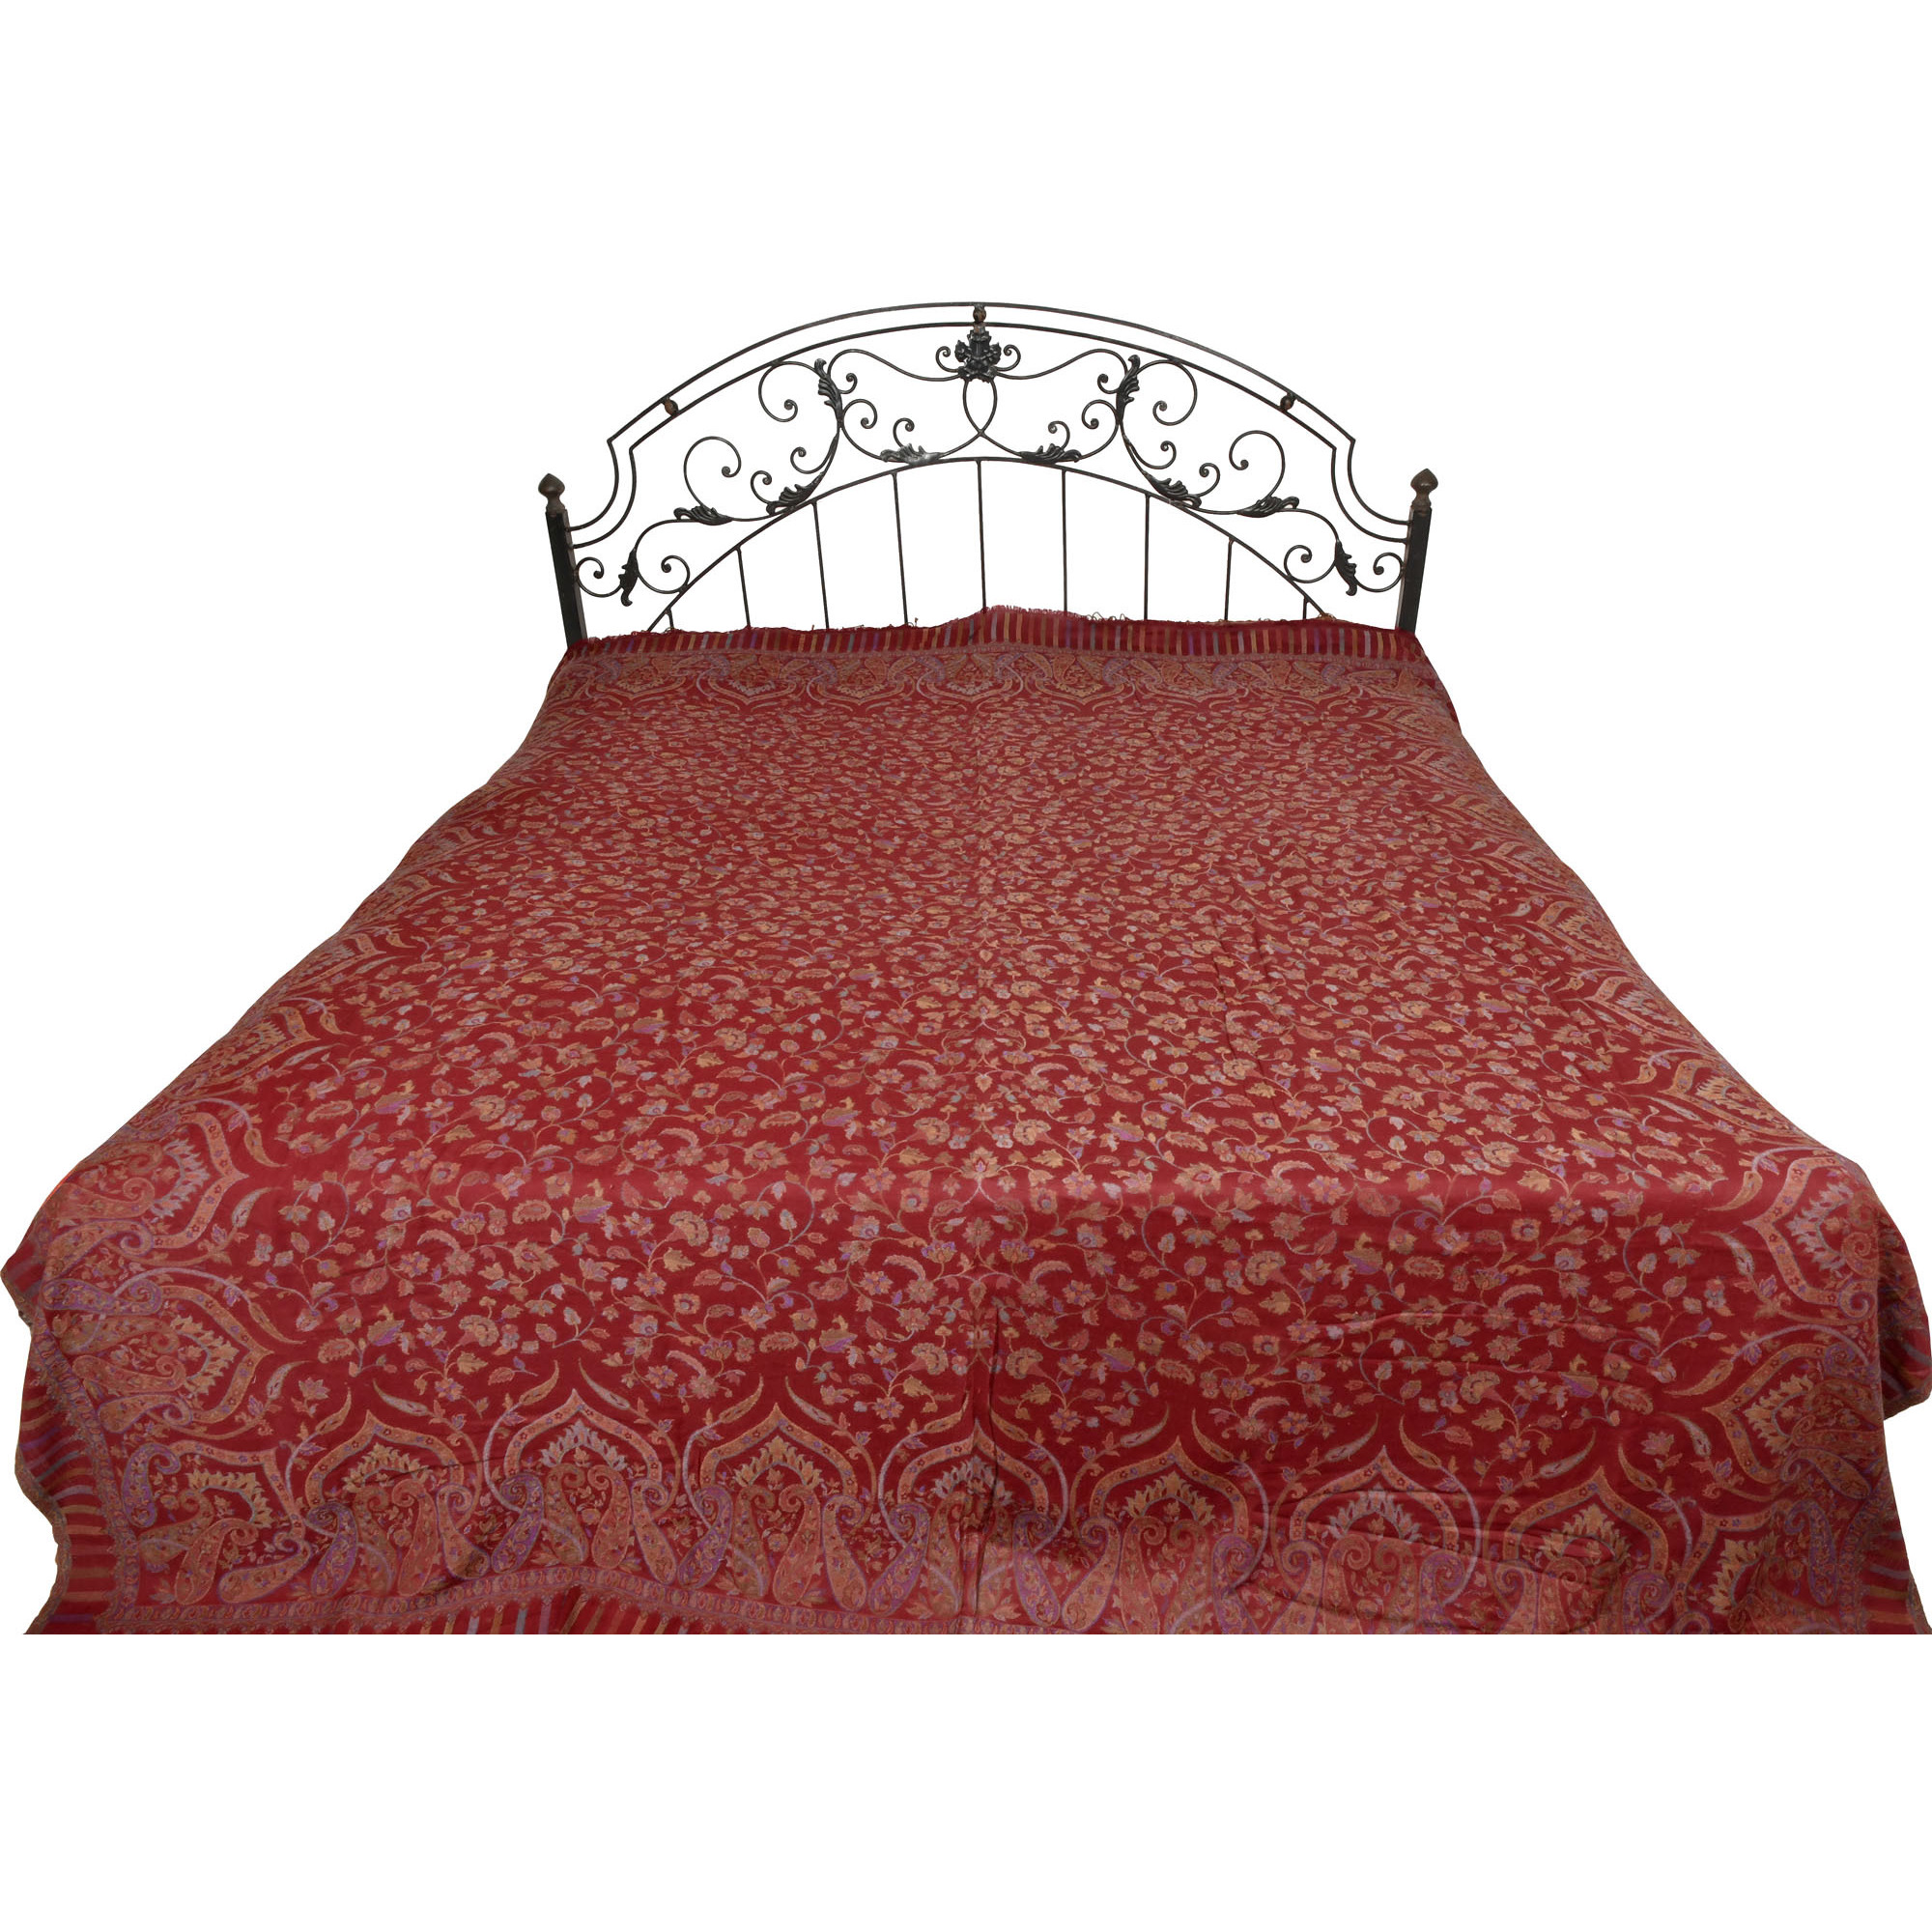 Maroon Jamawar Bedspread with Floral Kani Weave